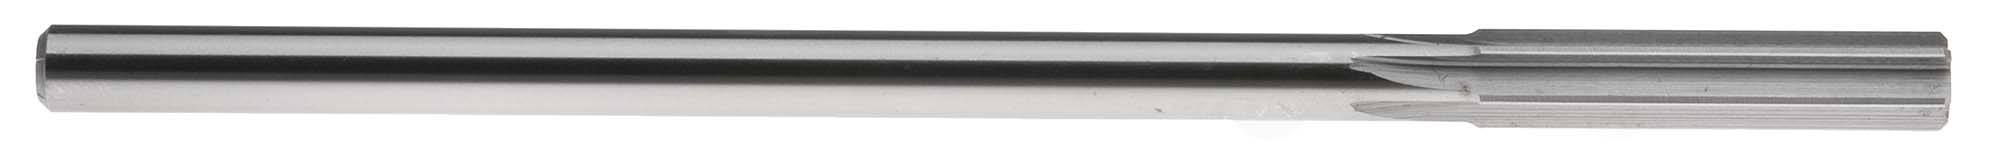 "7/32"" Straight Shank Chucking Reamer, Straight Flute, High Speed Steel"